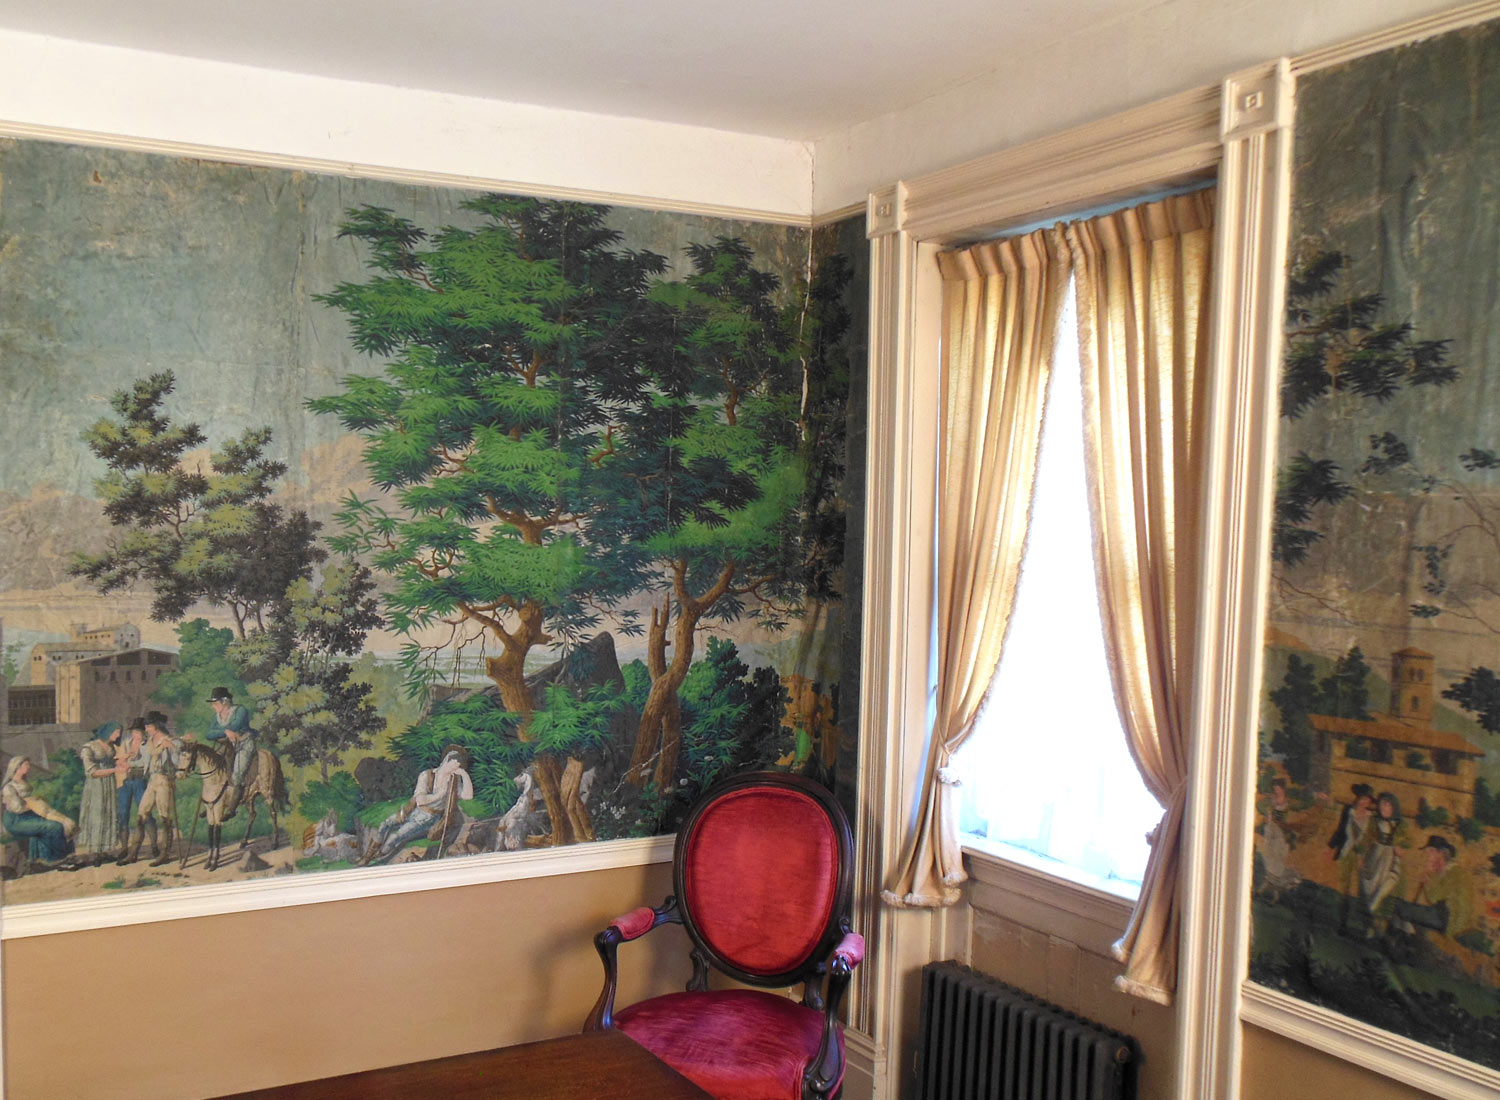 Vues d'Italie wallpaper installed in the house of James Siena and Katia Santibañez in Otis, MA. All color images of the wallpaper in the house are courtesy ...